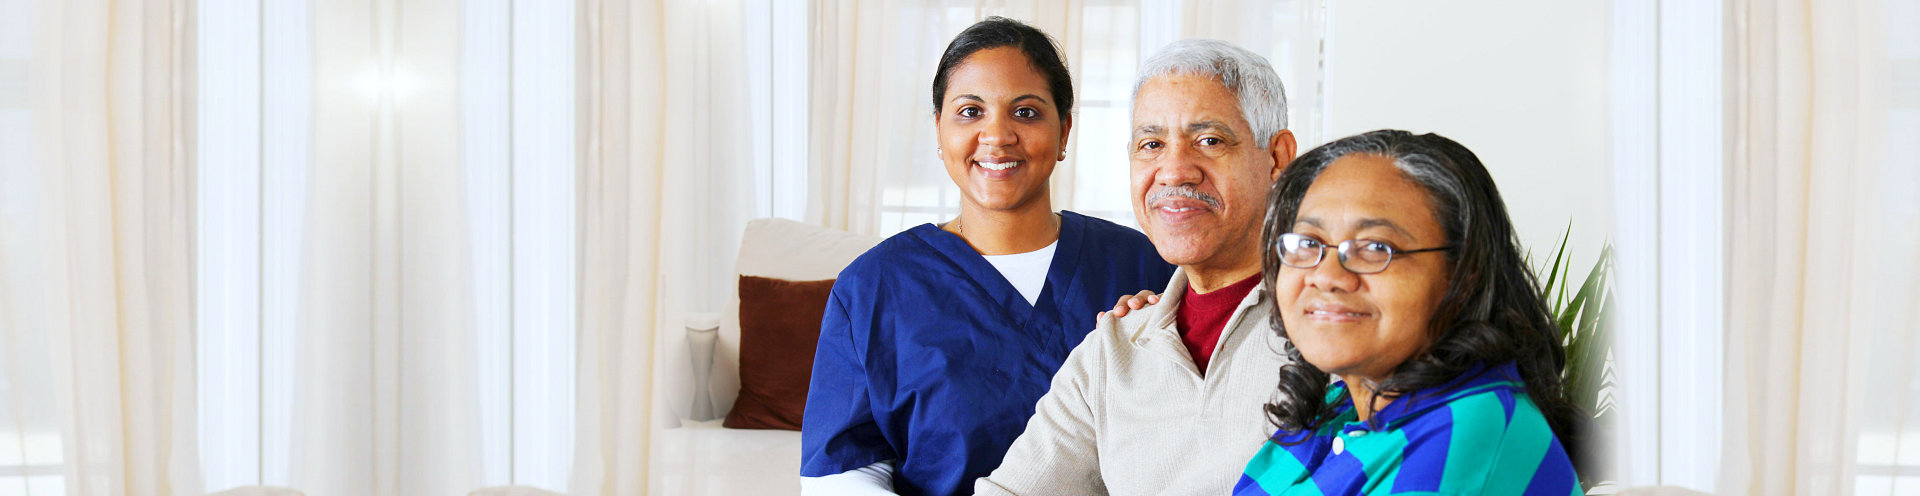 caregiver and her elderly couple patient